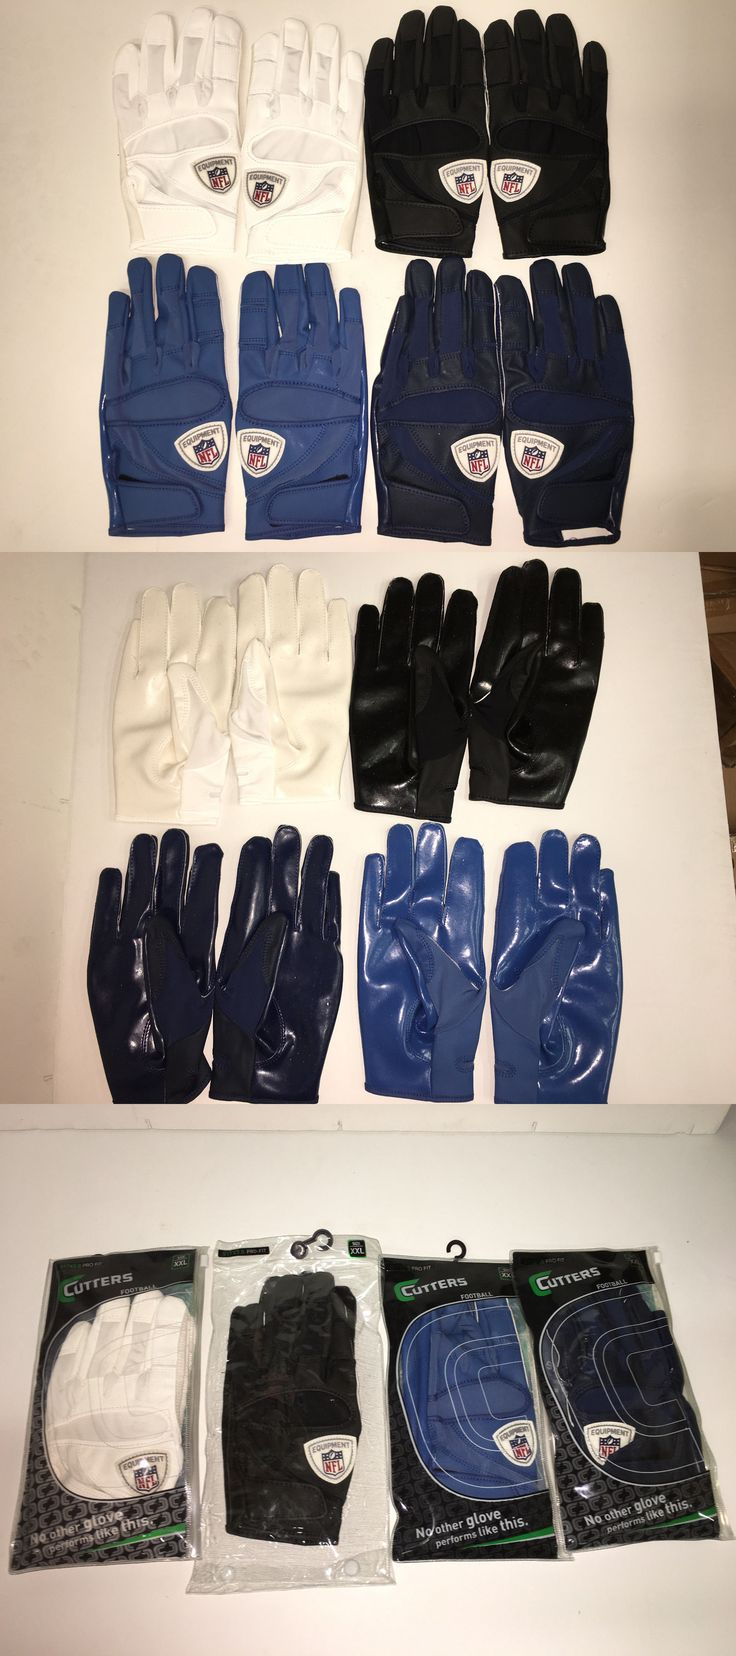 Driving gloves yahoo answers - Gloves 159114 New Nfl Equipment Cutters 017x 3 0 Pro Fit Wide Receiver 2xl Football